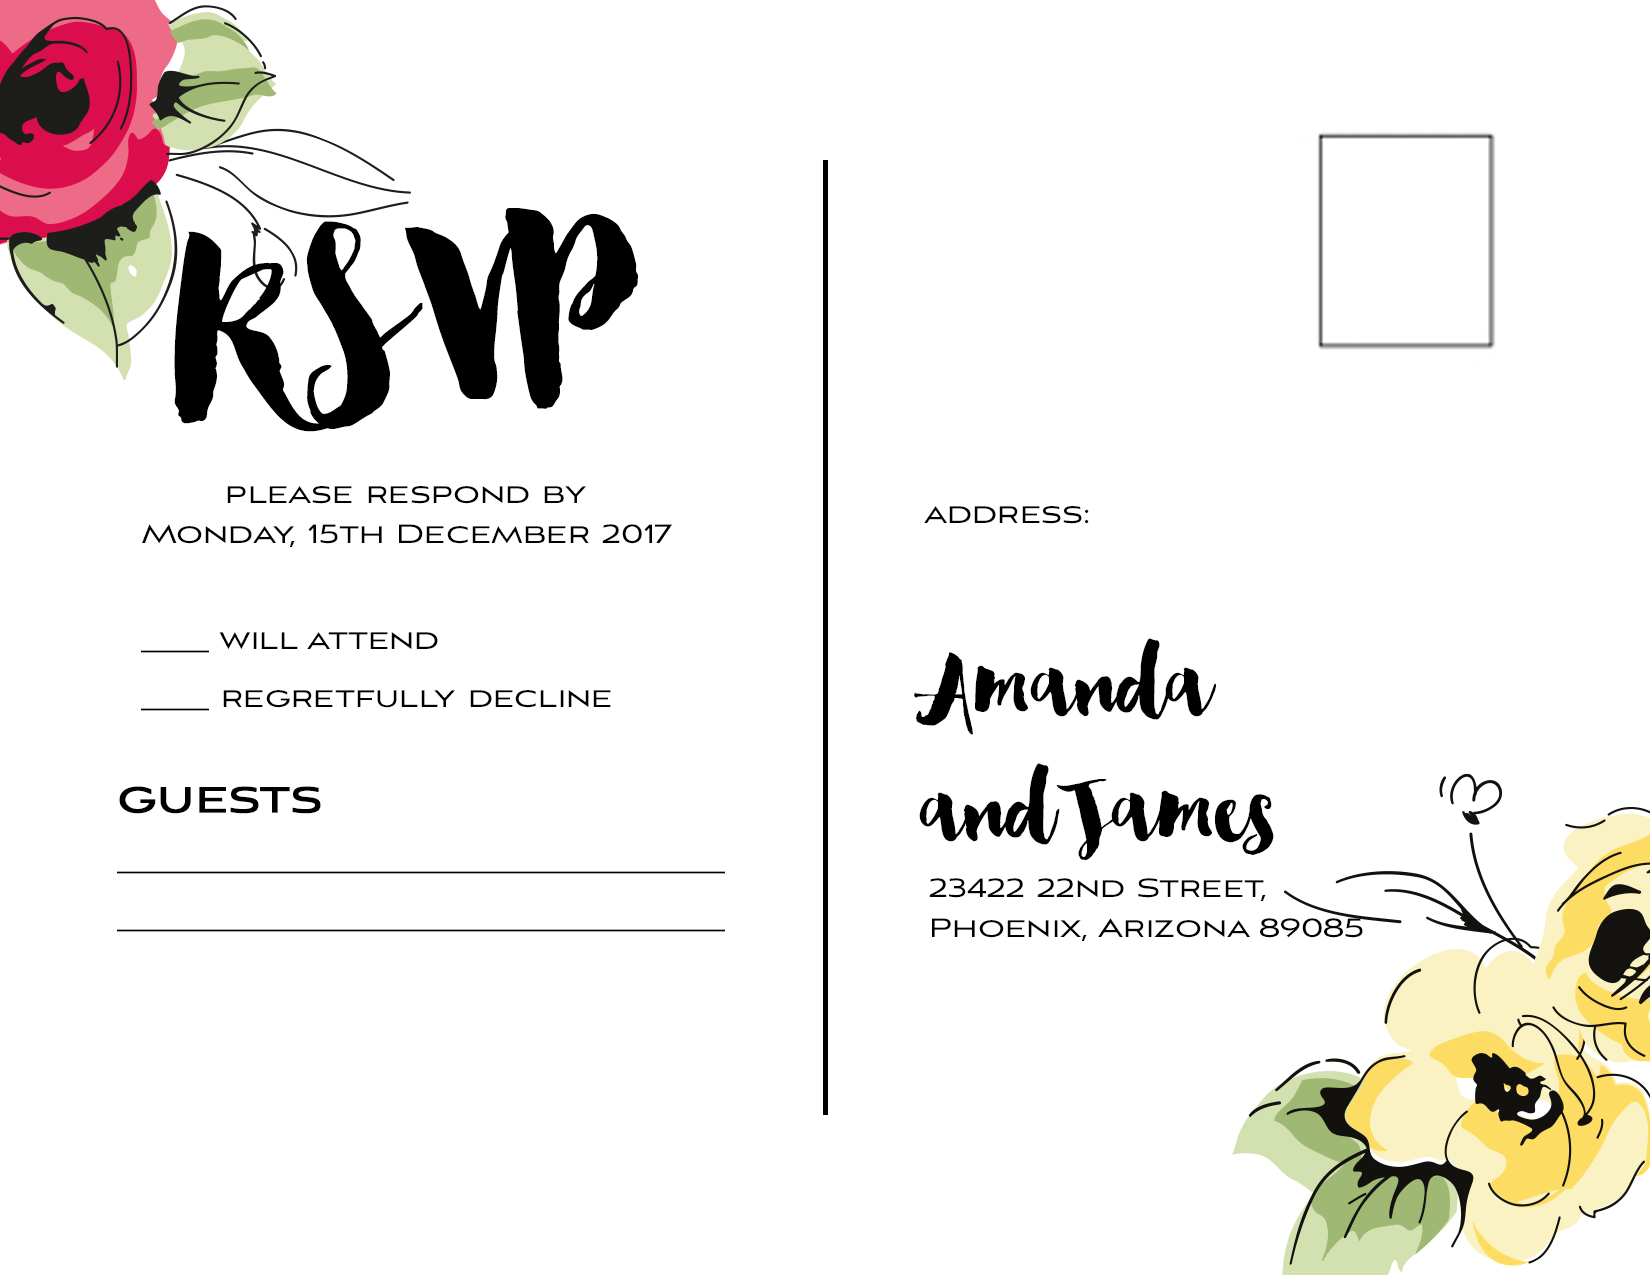 Wedding kit rsvp postcard template  3